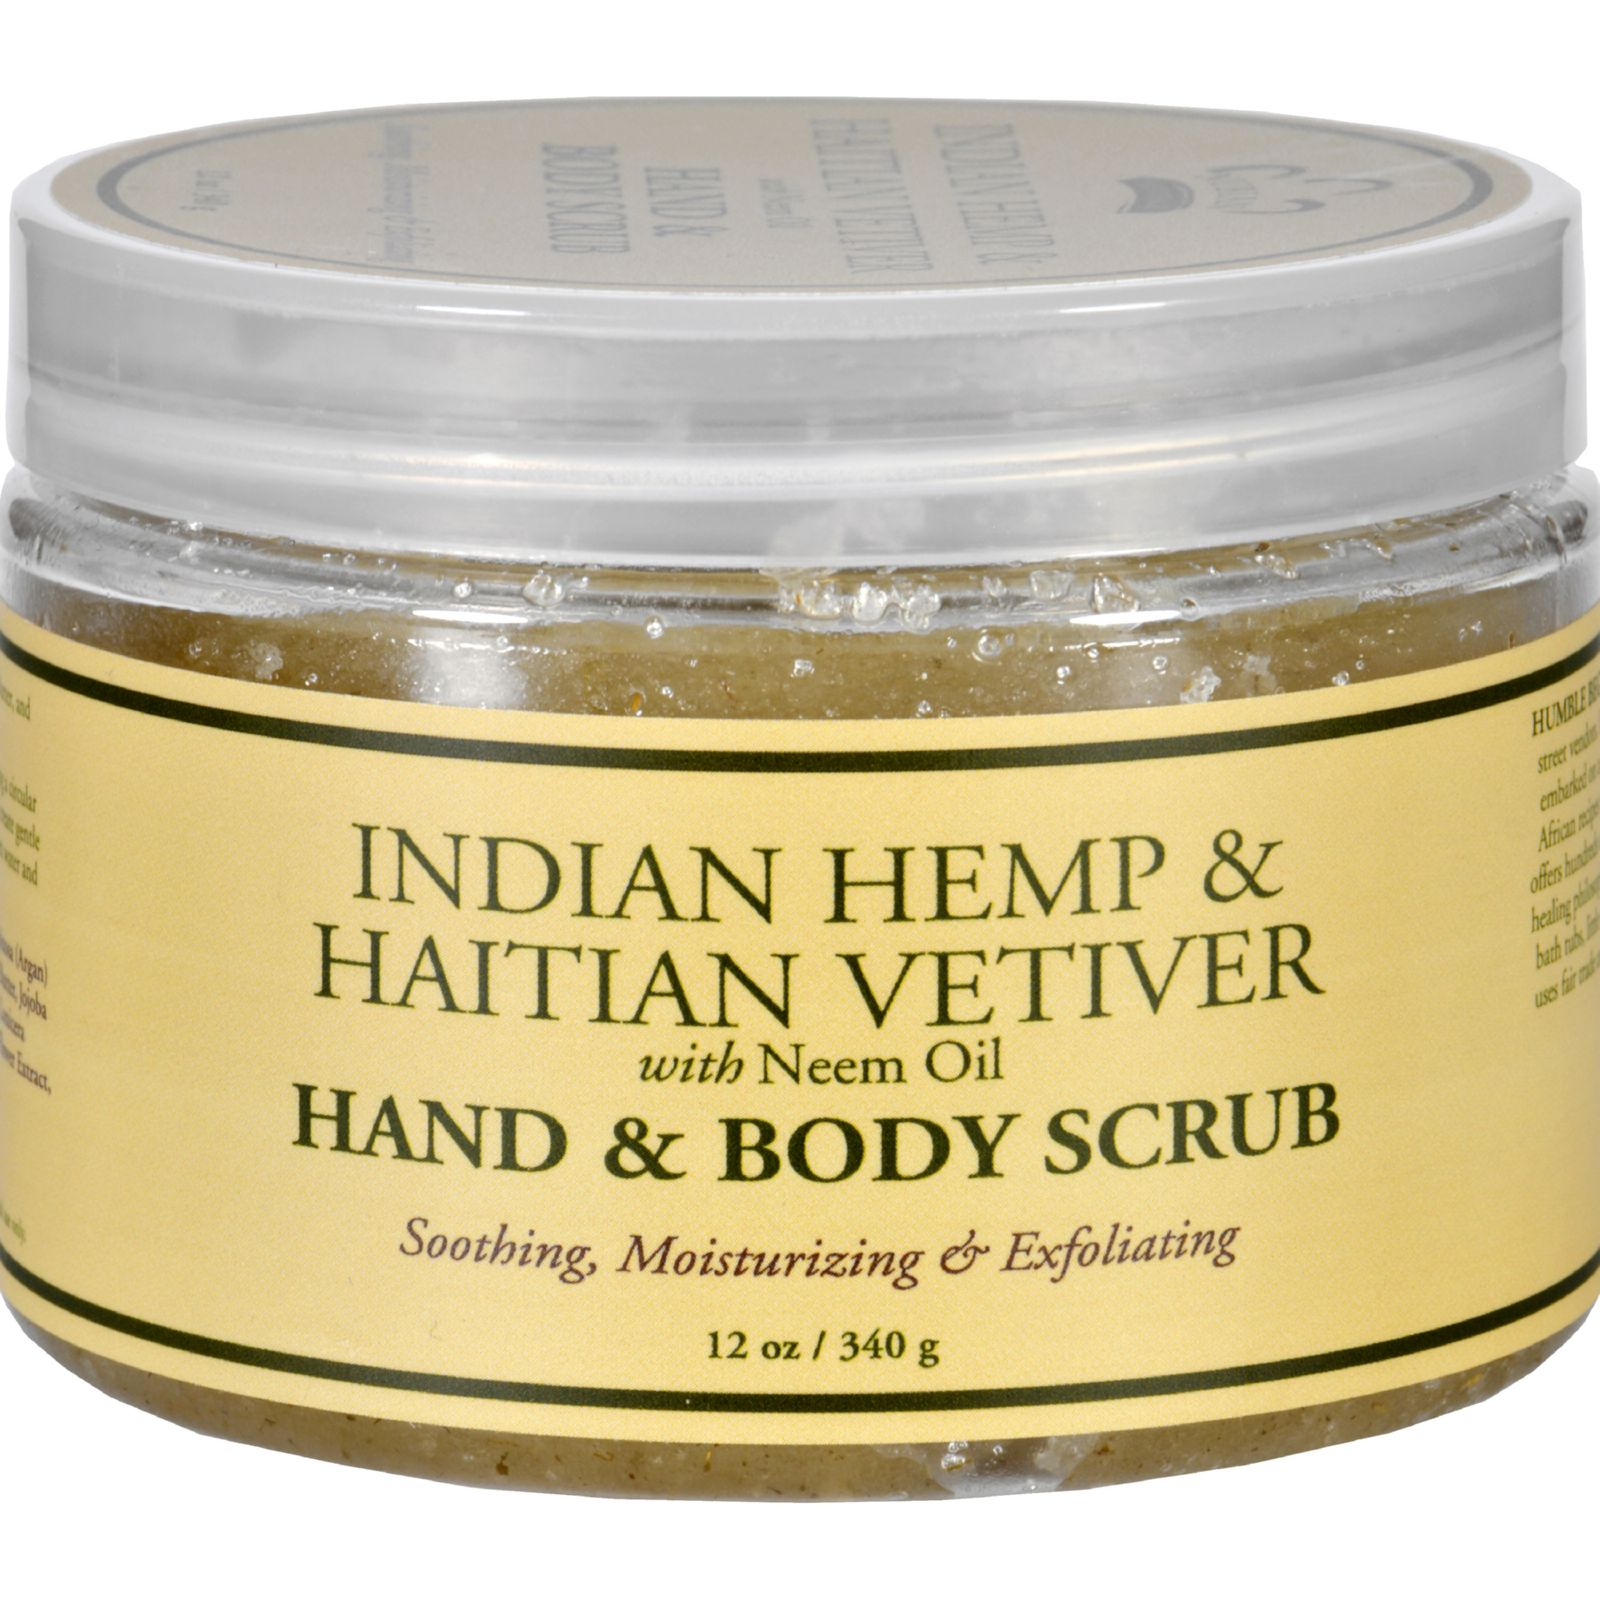 Nubian Heritage Hand And Body Scrub - Indian Hemp And Haitian Vetiver - 12 Oz